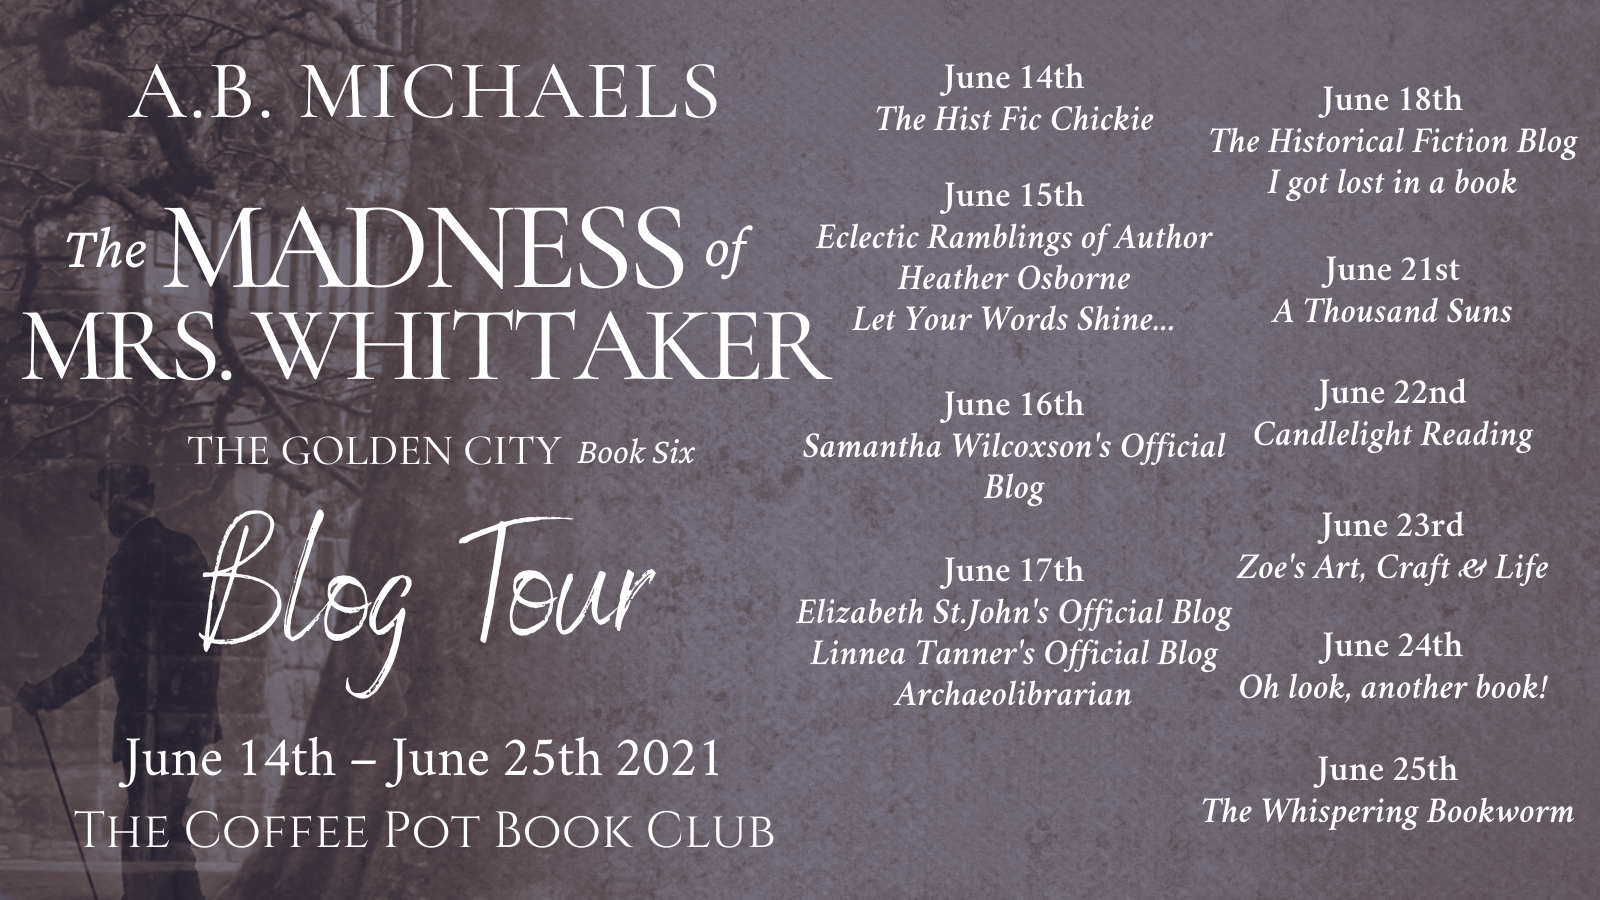 The Madness of Mrs. Whittaker Tour Schedule Banner